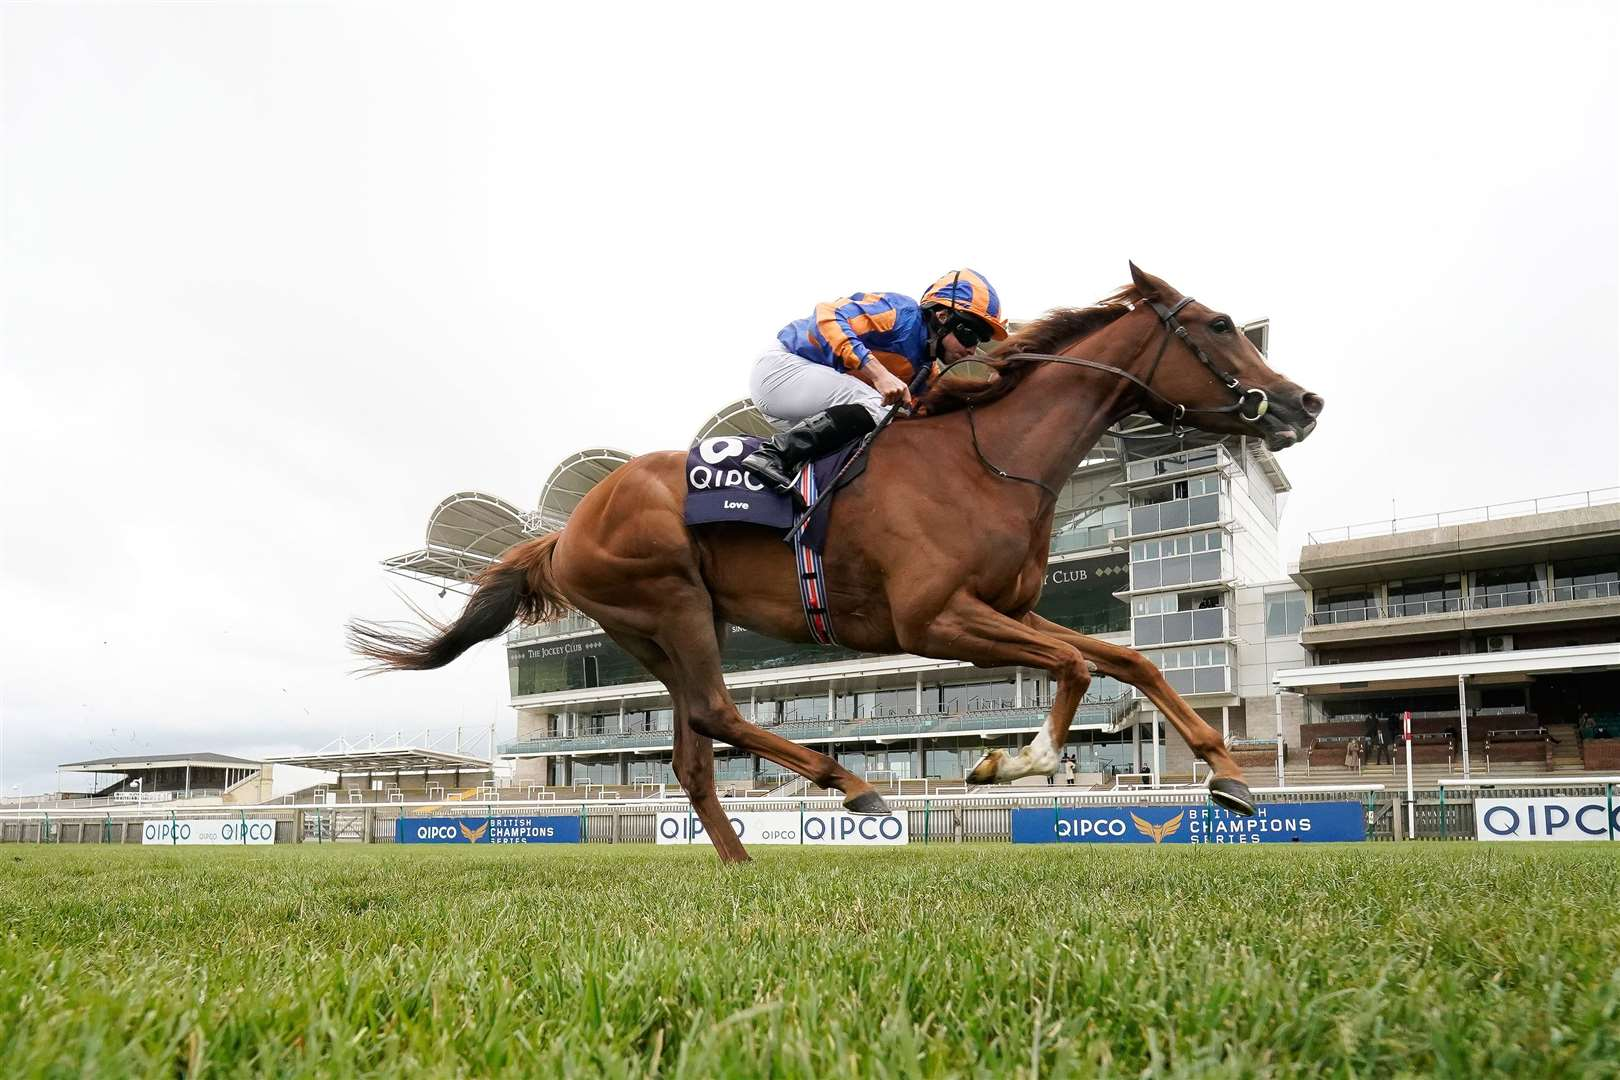 NEWMARKET, ENGLAND - JUNE 07: Ryan Moore riding Love win The Qipco 1000 Guineas Stakes at Newmarket Racecourse on June 07, 2020 in Newmarket, England. (Photo by Alan Crowhurst/Getty Images). (36301615)